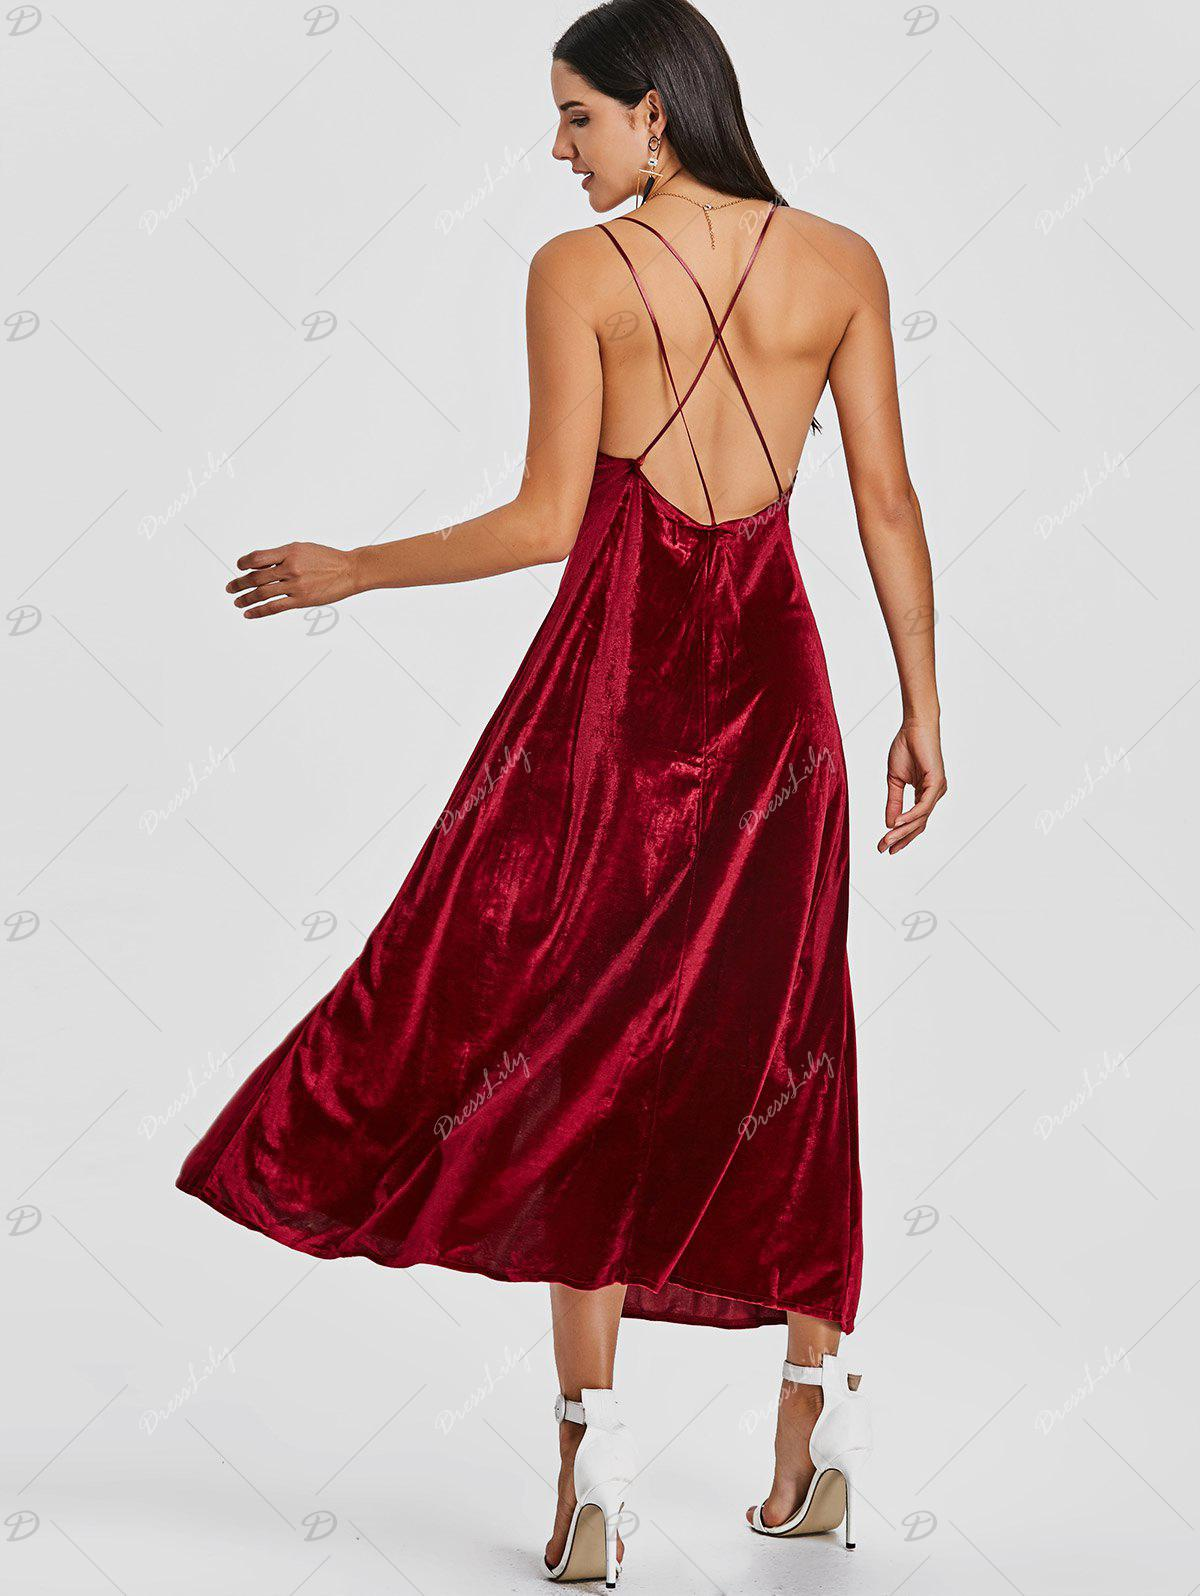 Backless High Slit Velvet Maxi Dress - WINE RED M